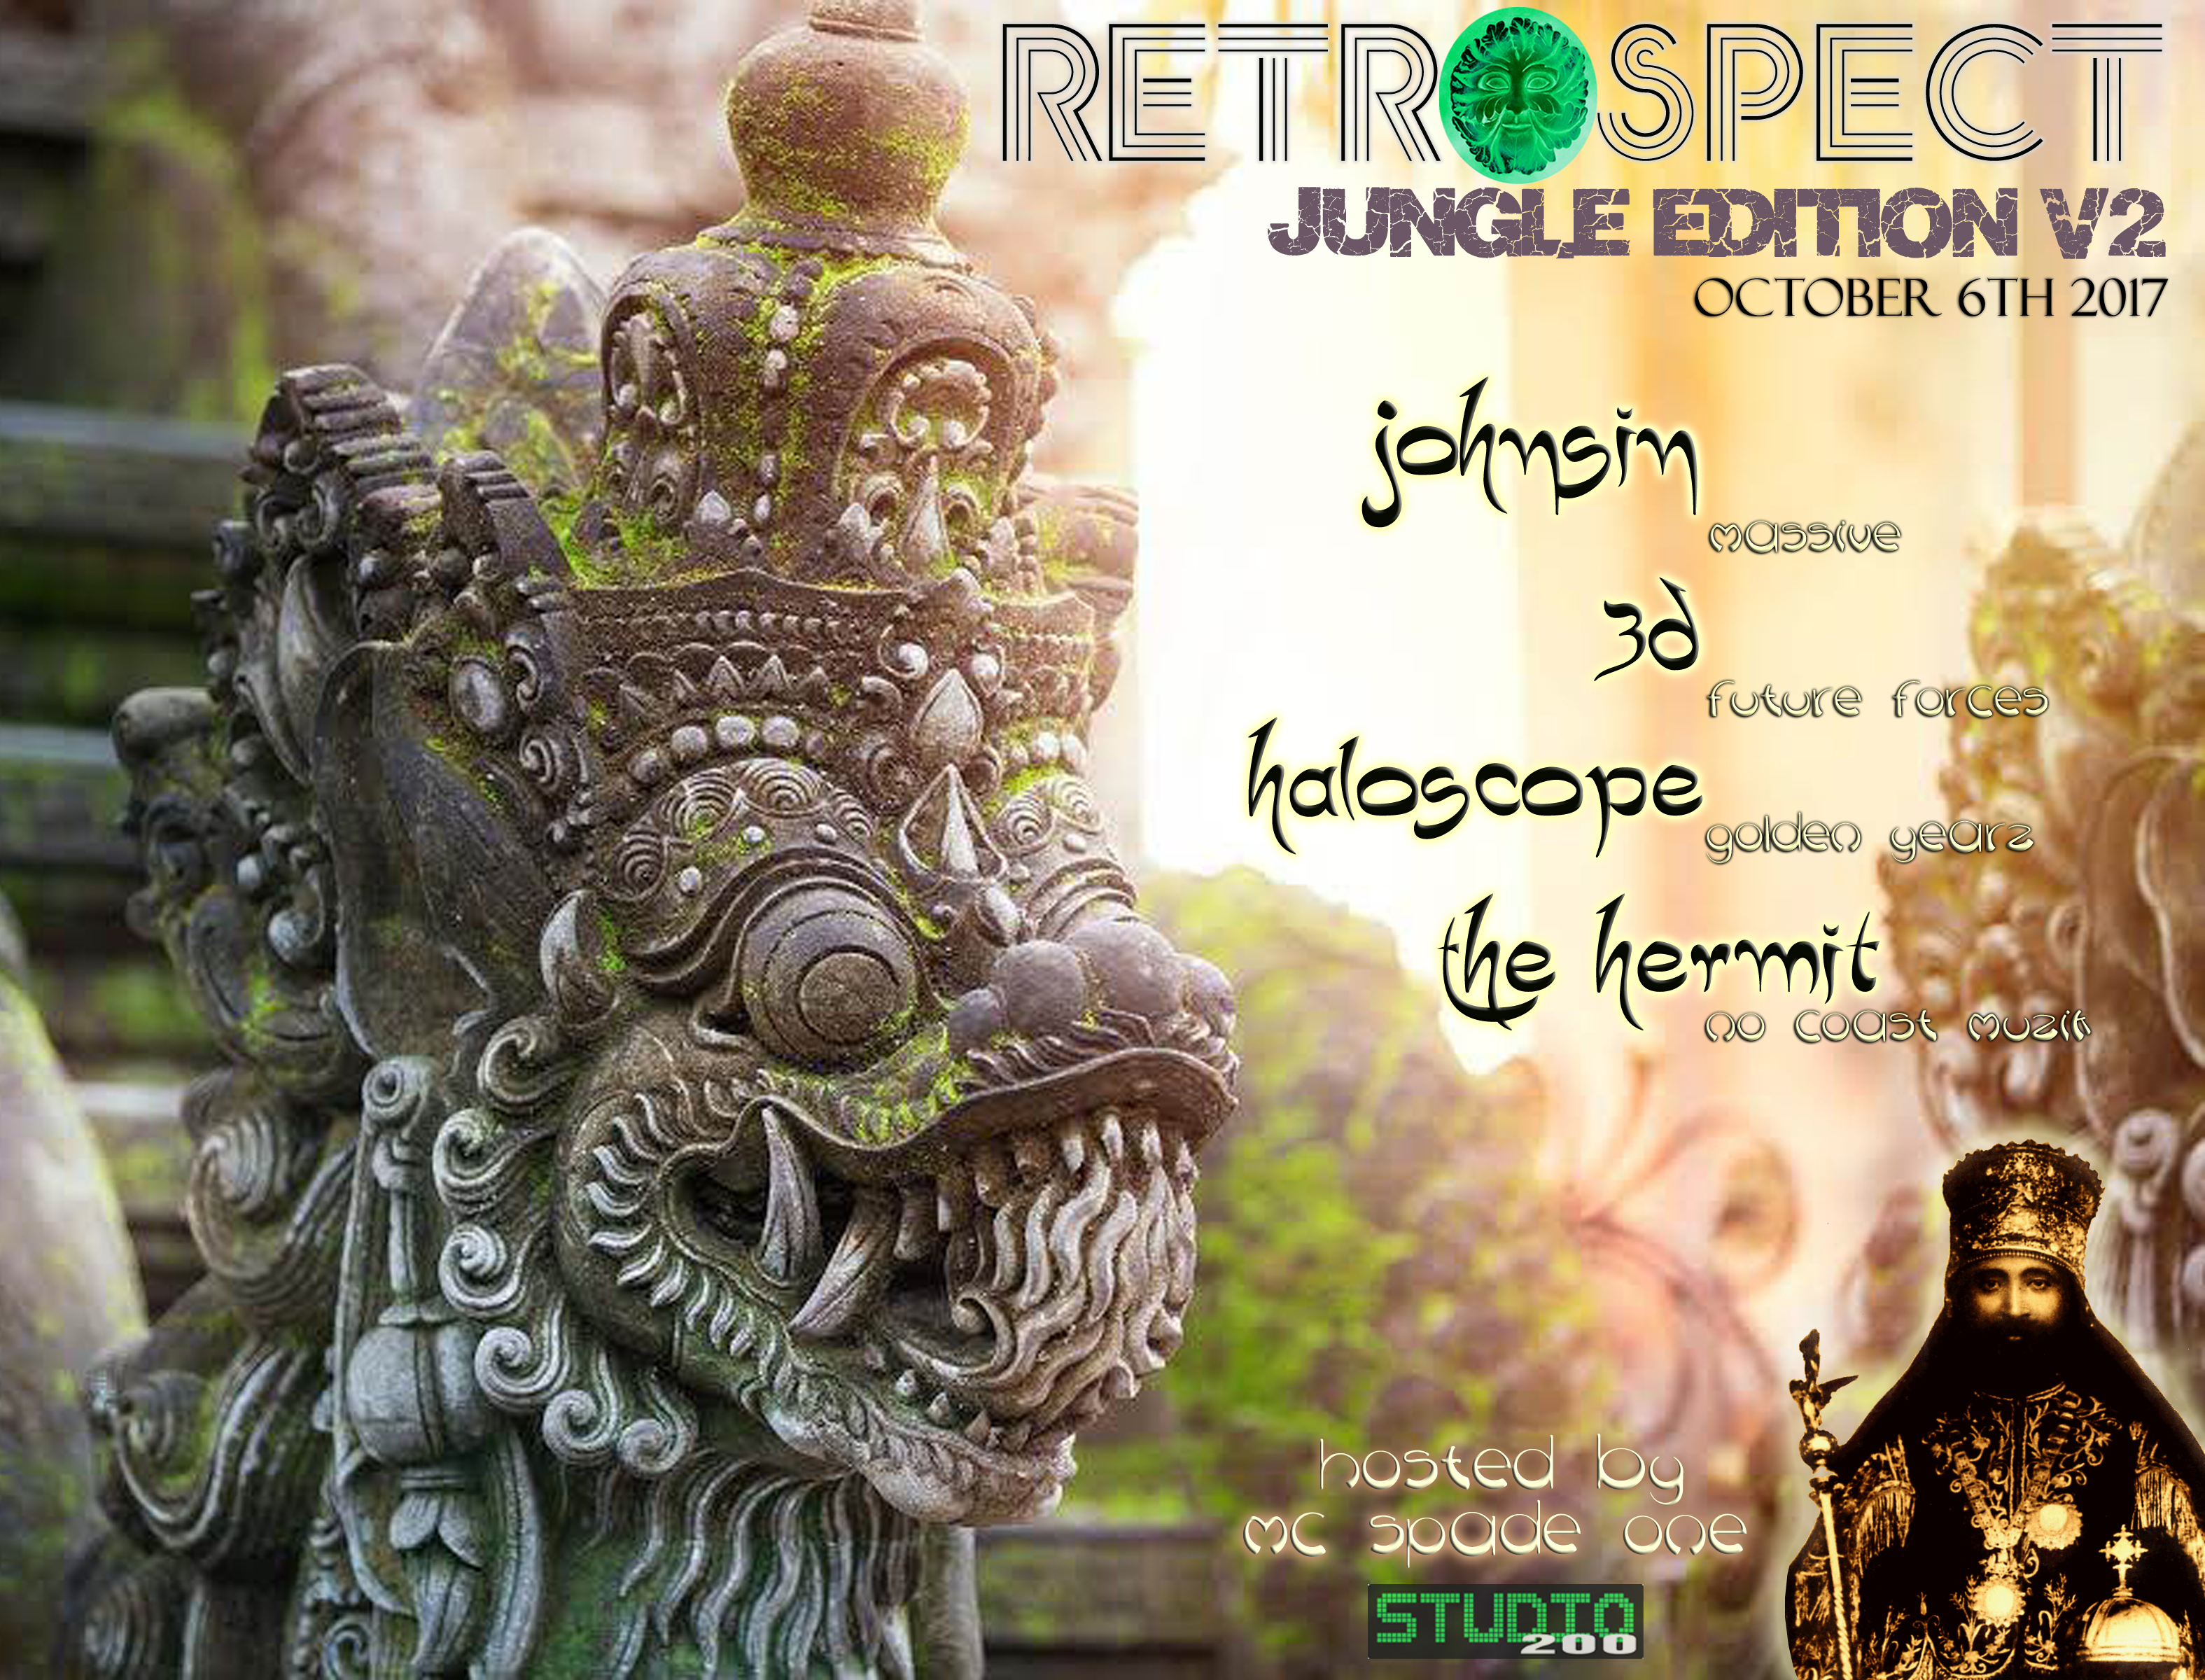 Live recording of The Hermit's & mc Spade One's set for Retrospect Jungle  Edition v2 at Studio 200 in Milwaukee, Wisconsin on 10-6-2017.